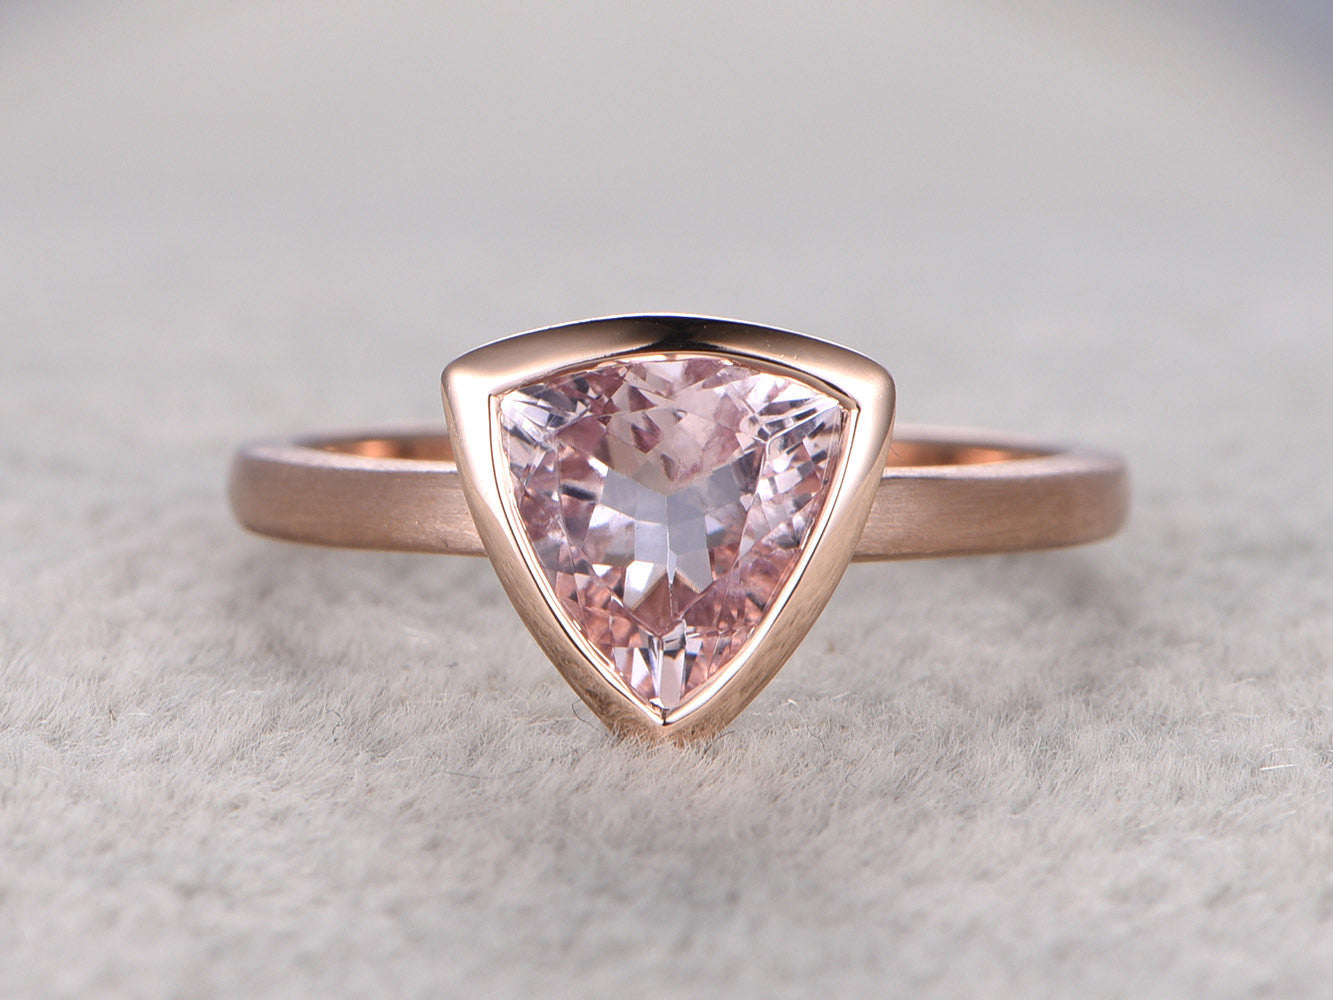 9x9mm Morganite Solitaire Engagement ring, 14k Rose gold,Plain gold wedding band,Trillion Cut,Promise Bridal Ring,Bezel,unique design